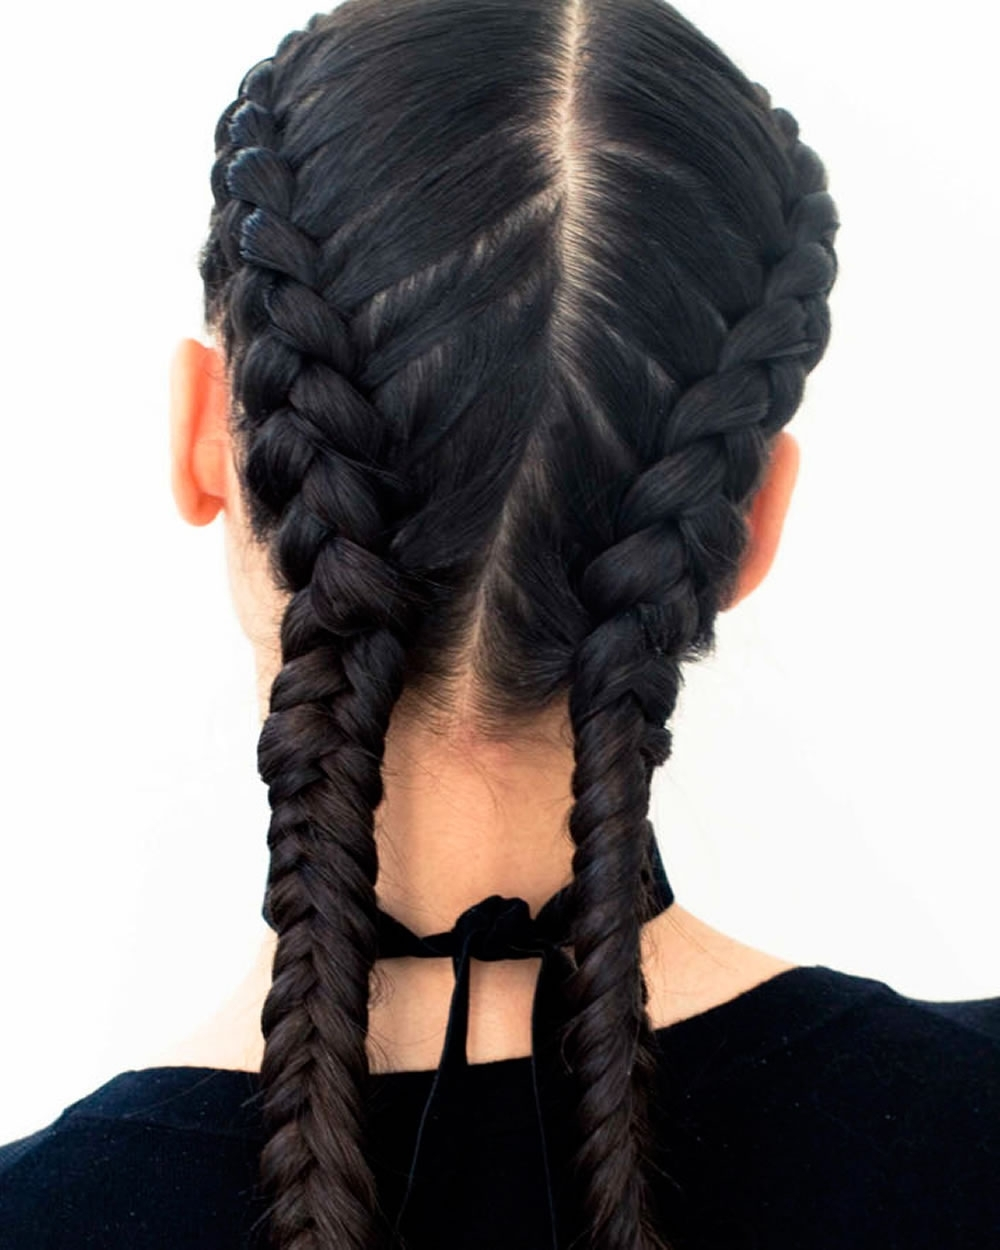 2017 Chunky Two French Braid Hairstyles For 21 French Braid Hairstyles – All You Need To Know About French (View 1 of 15)